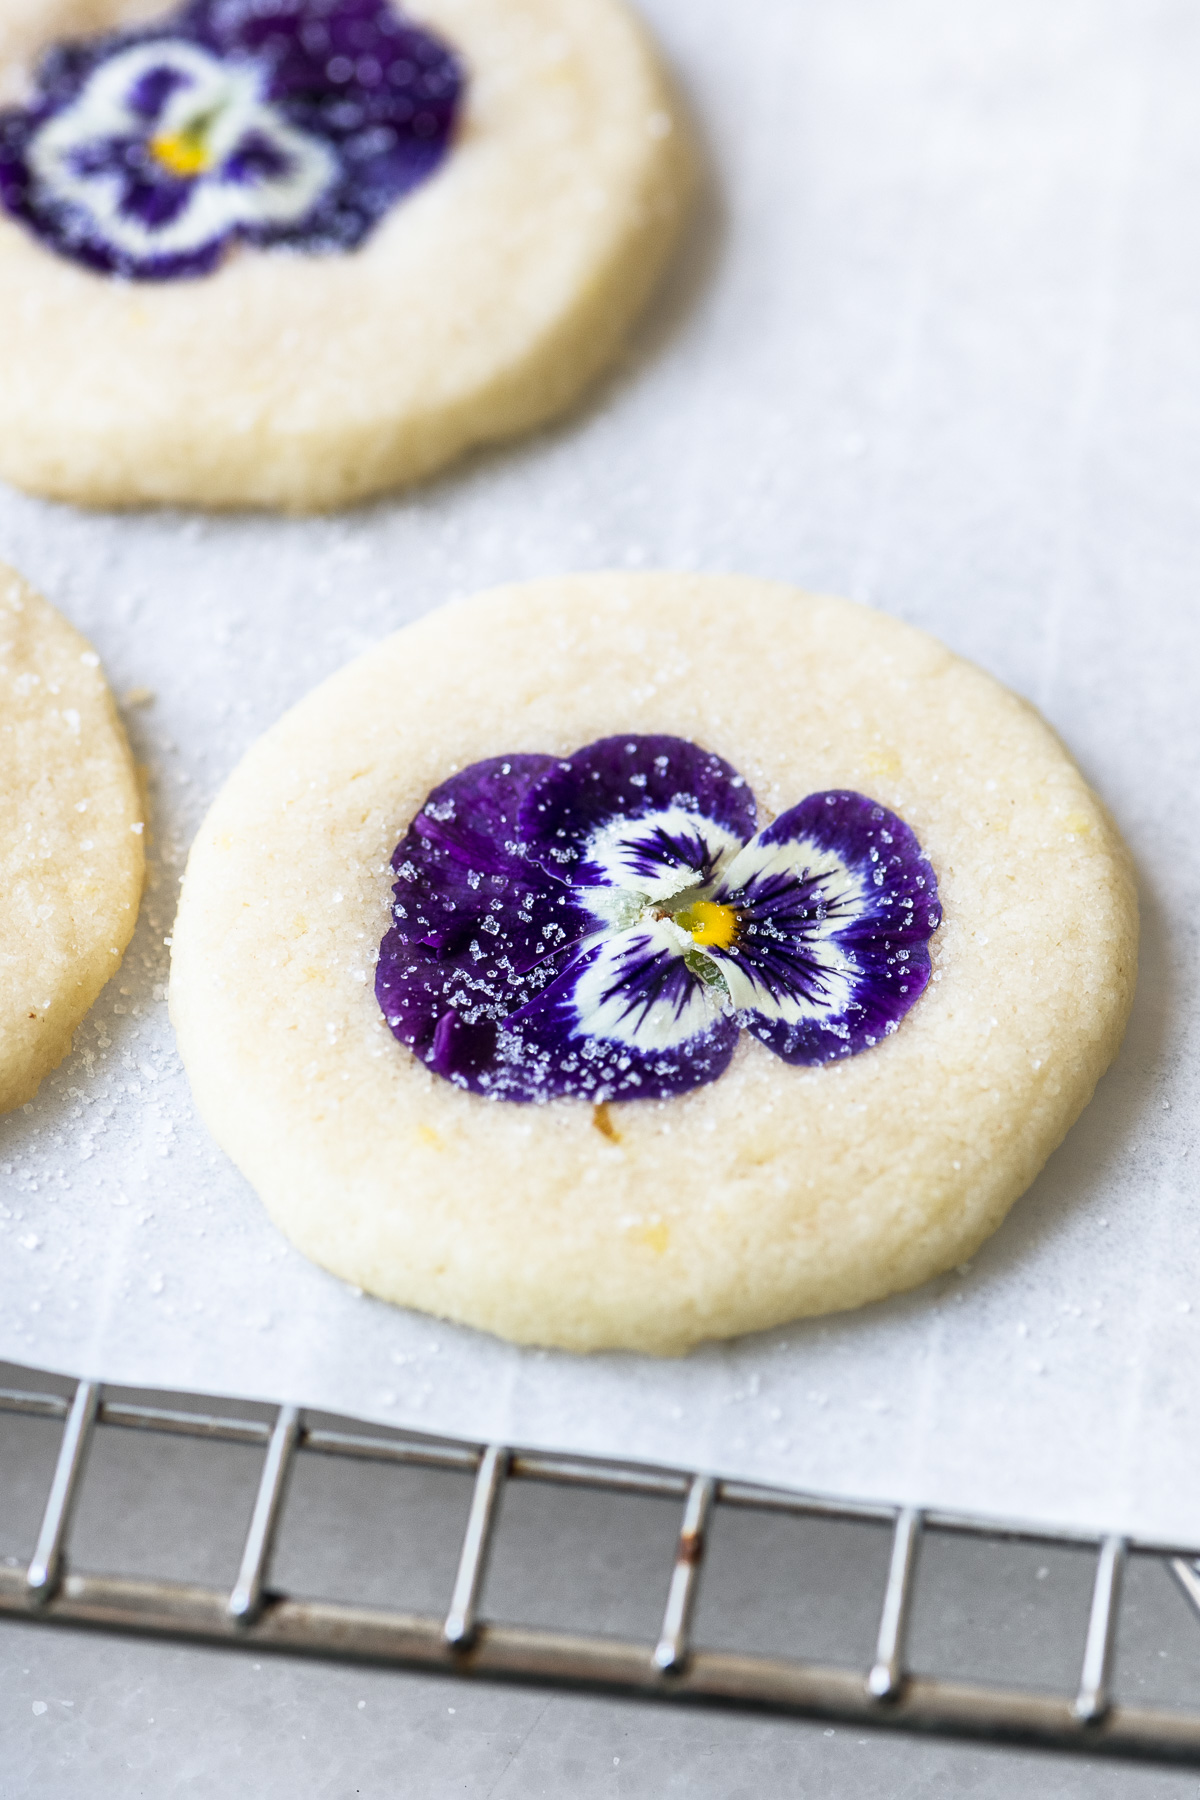 edible flower topped shortbread cookies, cooling